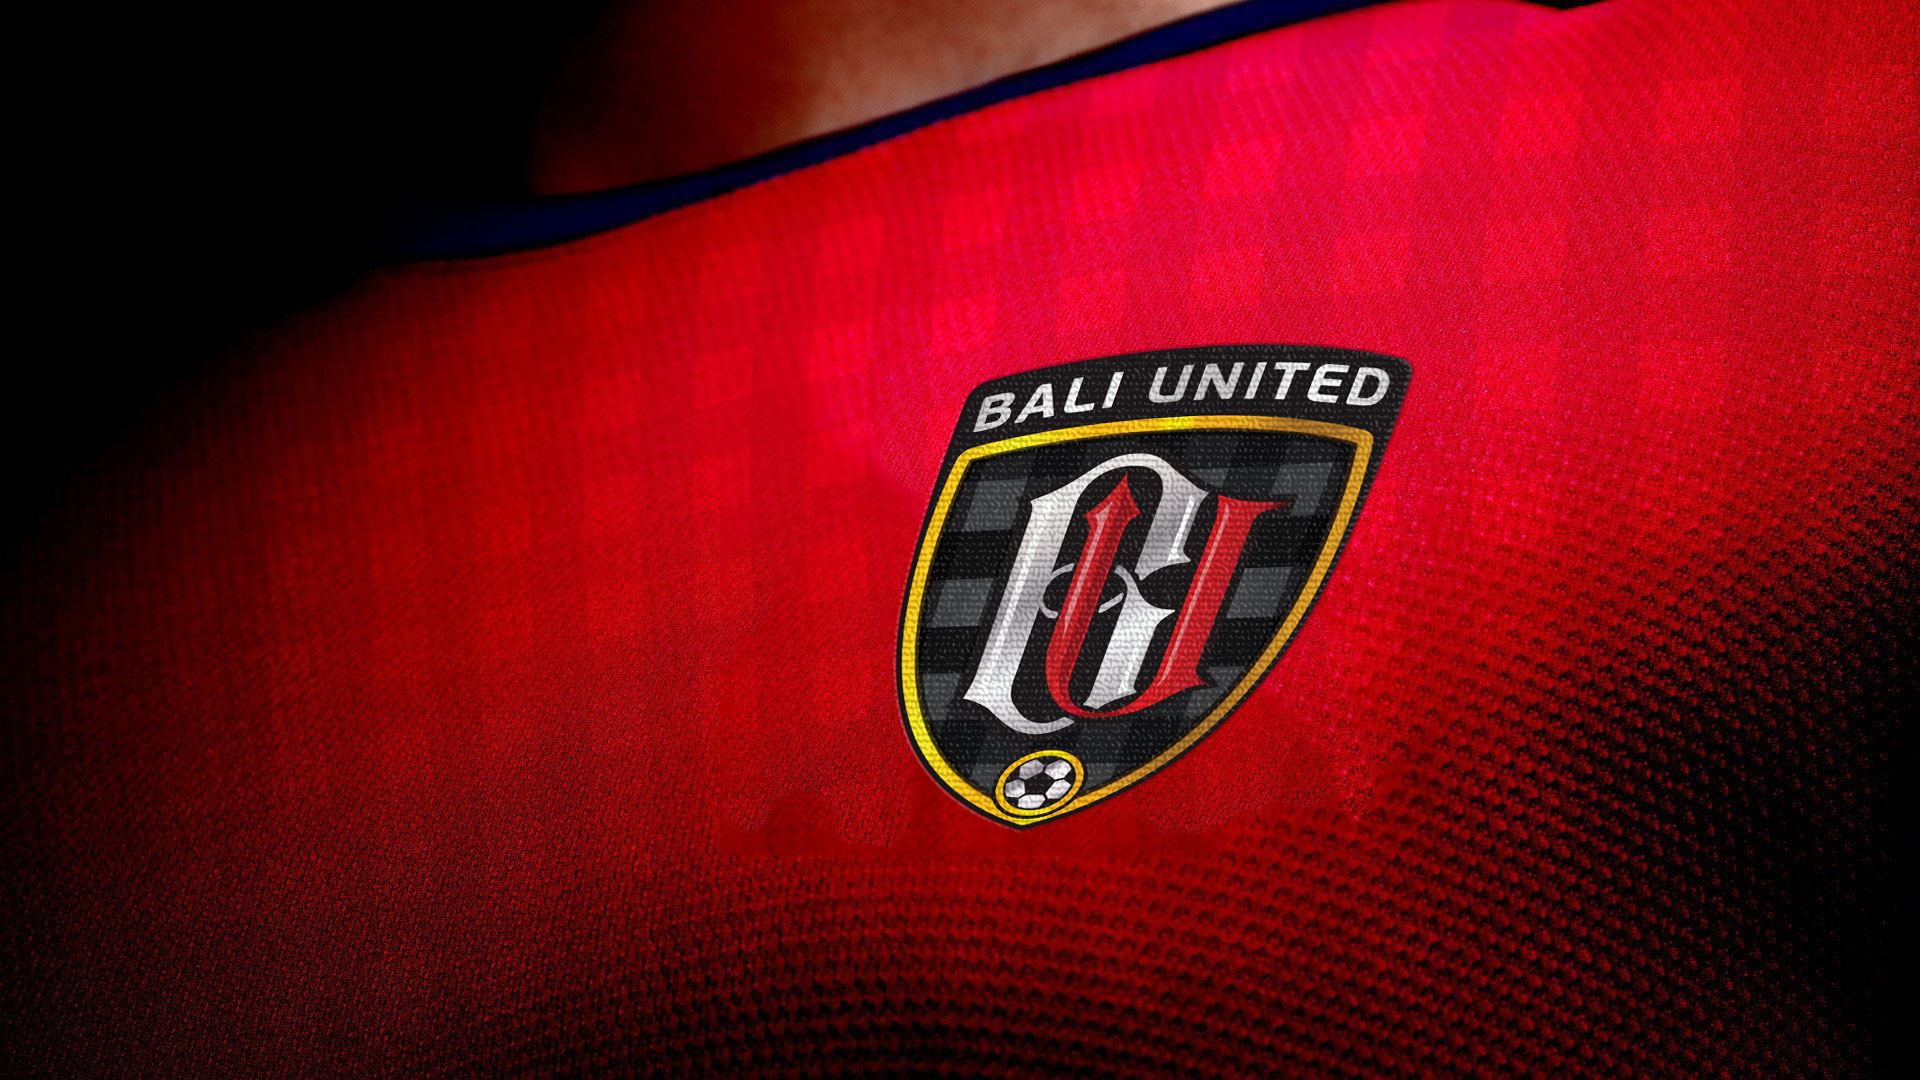 Bali United A Remarkable Transformation Into A Breakthrough Indonesia S Football Club Dmid